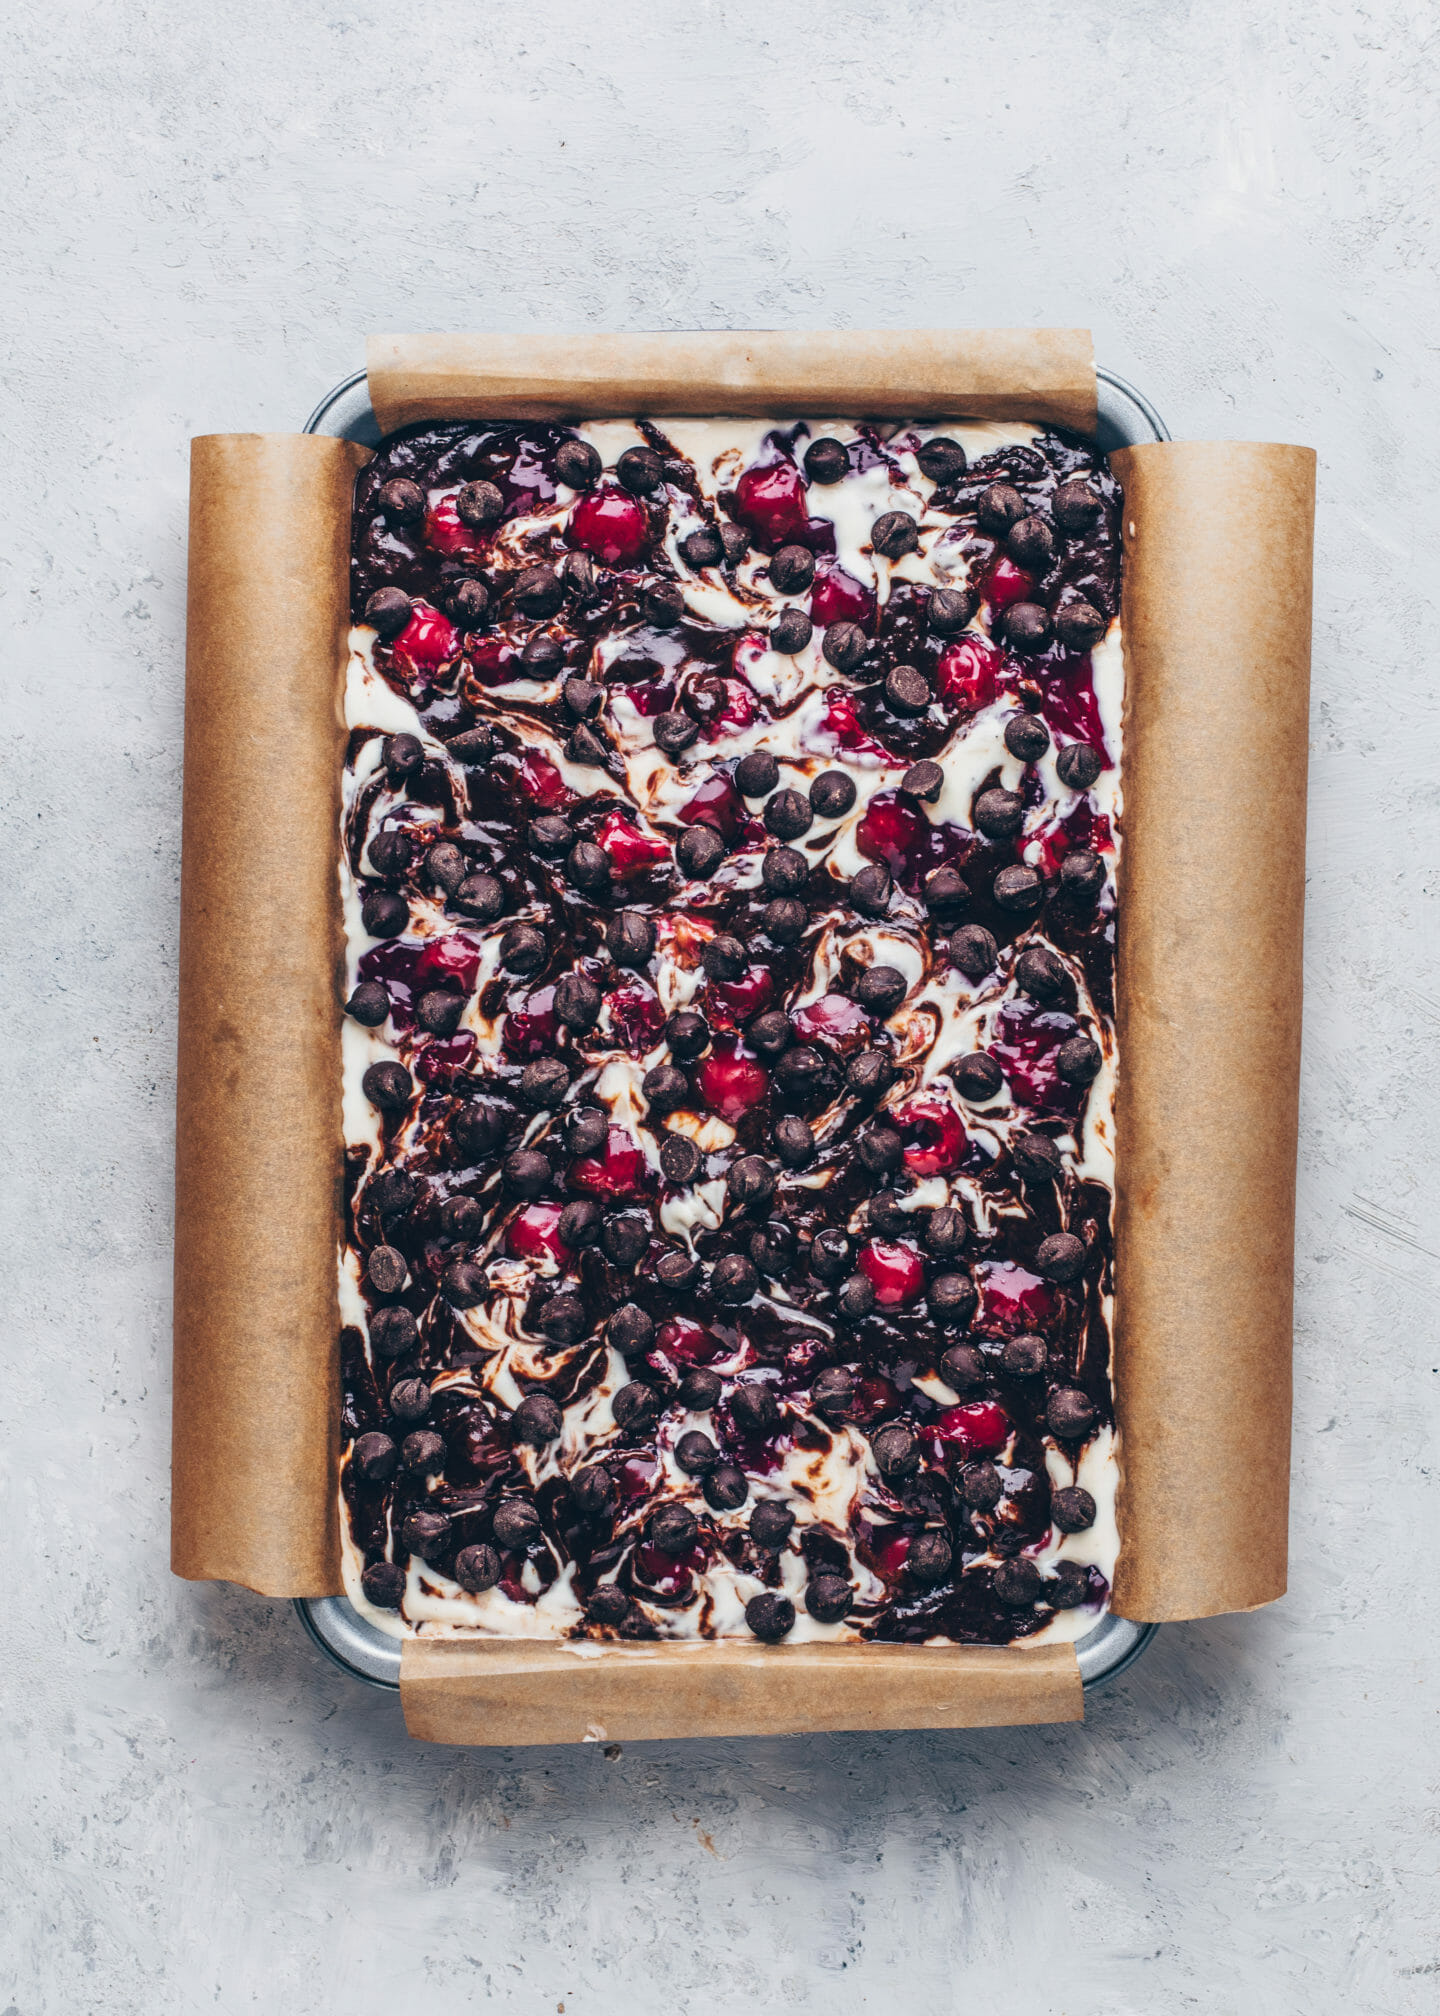 Cherry Cheesecake Swirl Brownies with vegan chocolate chips in a baking pan